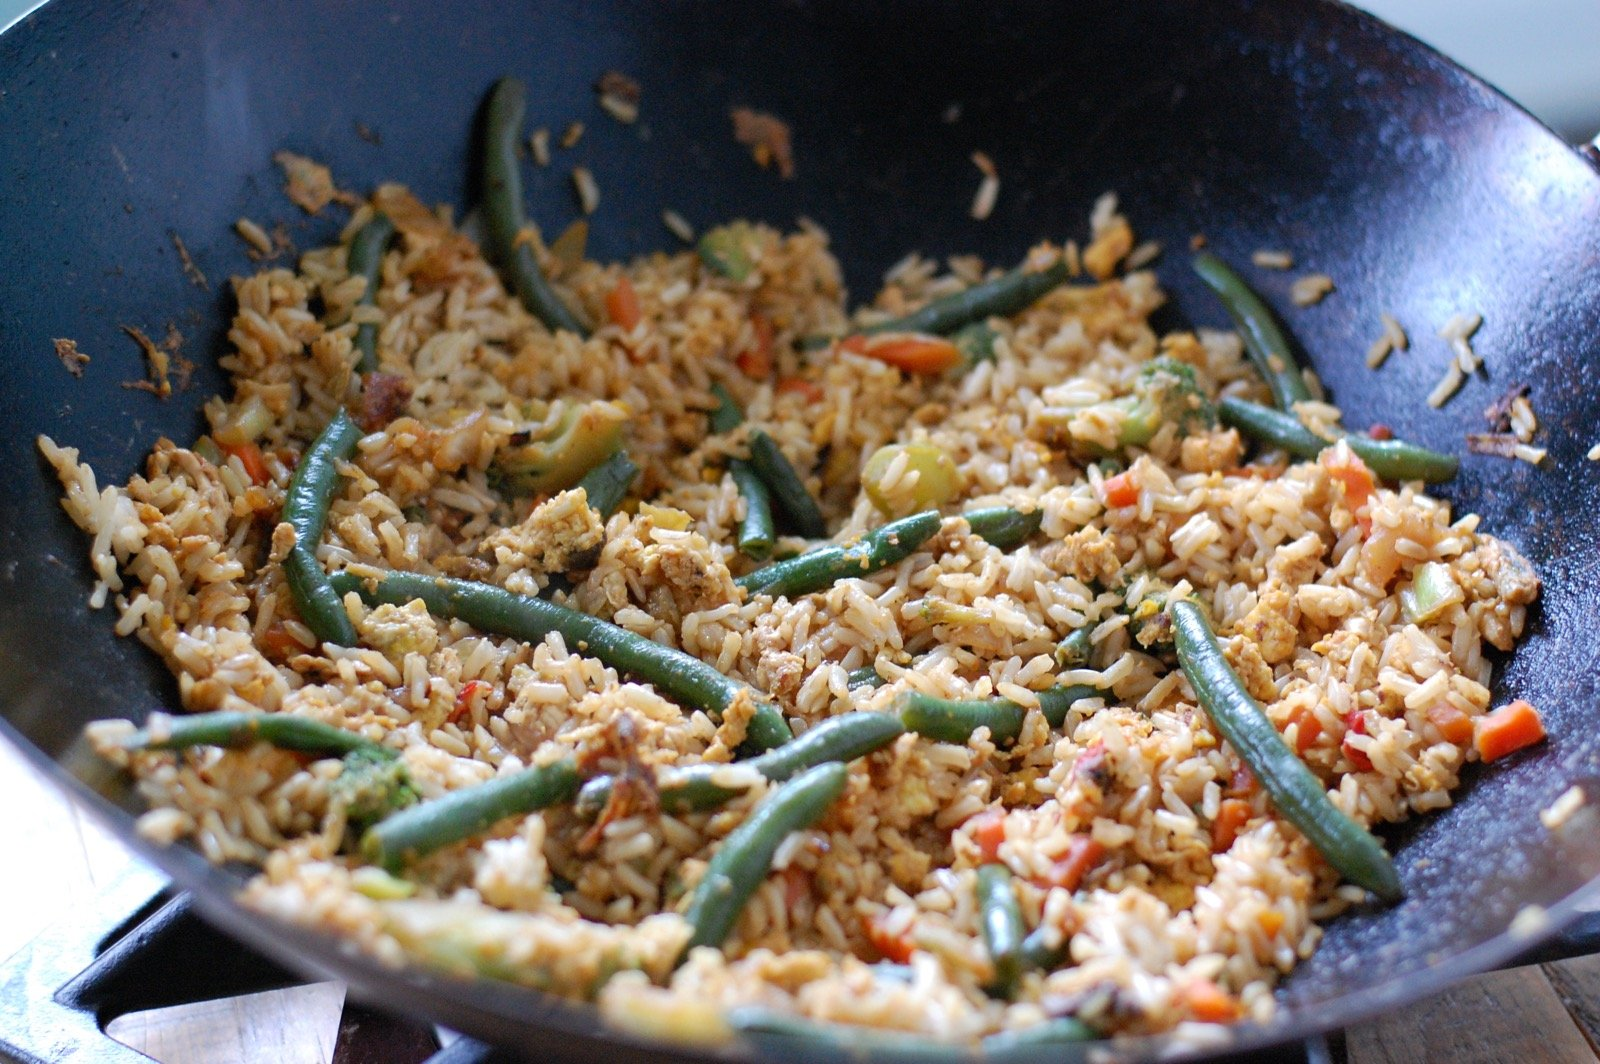 Leftover fried rice stir fry